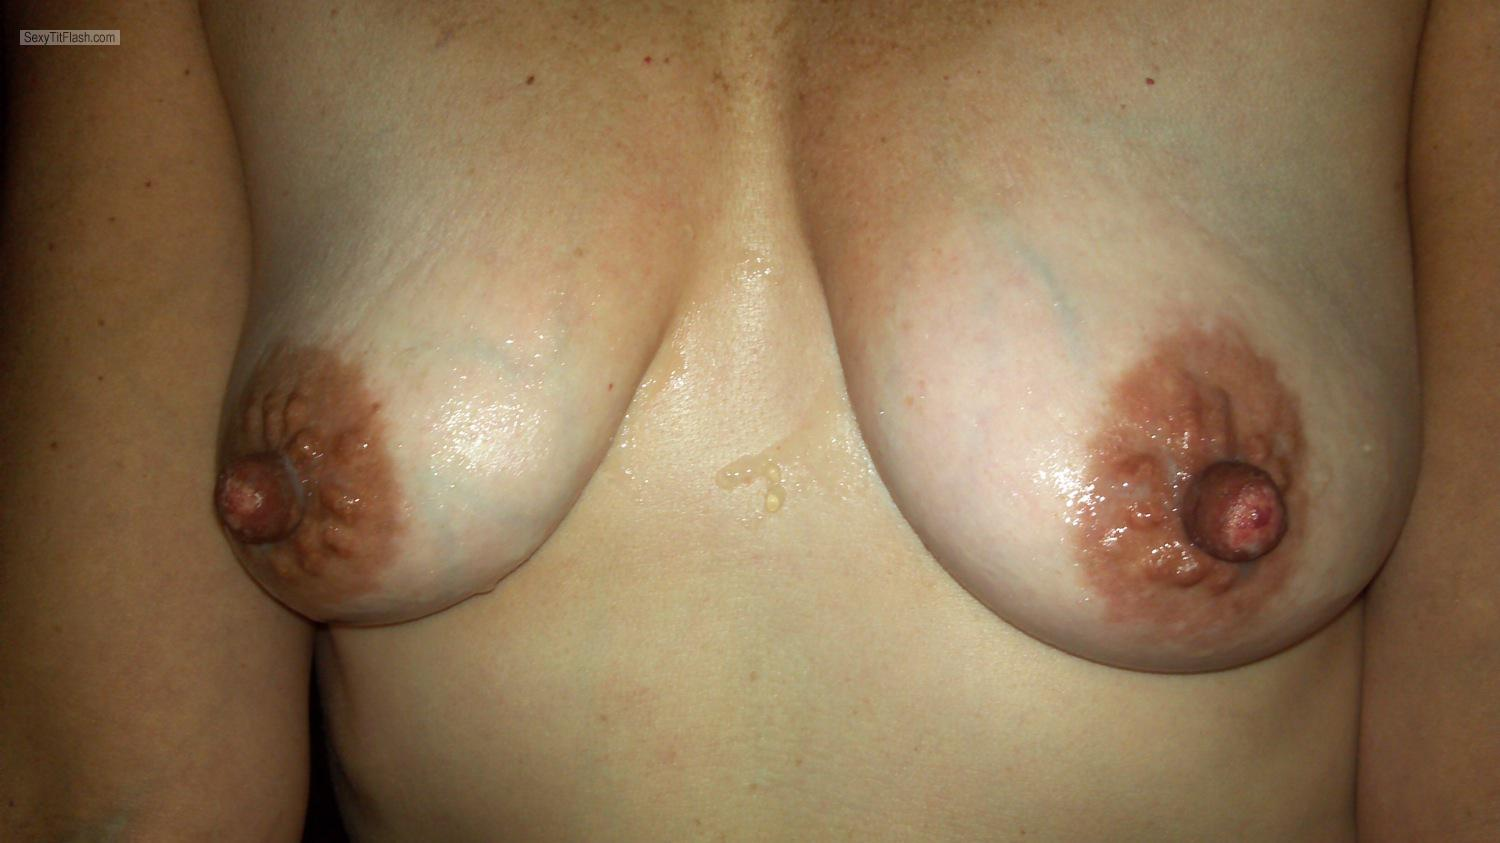 My Small Tits GreatNips69